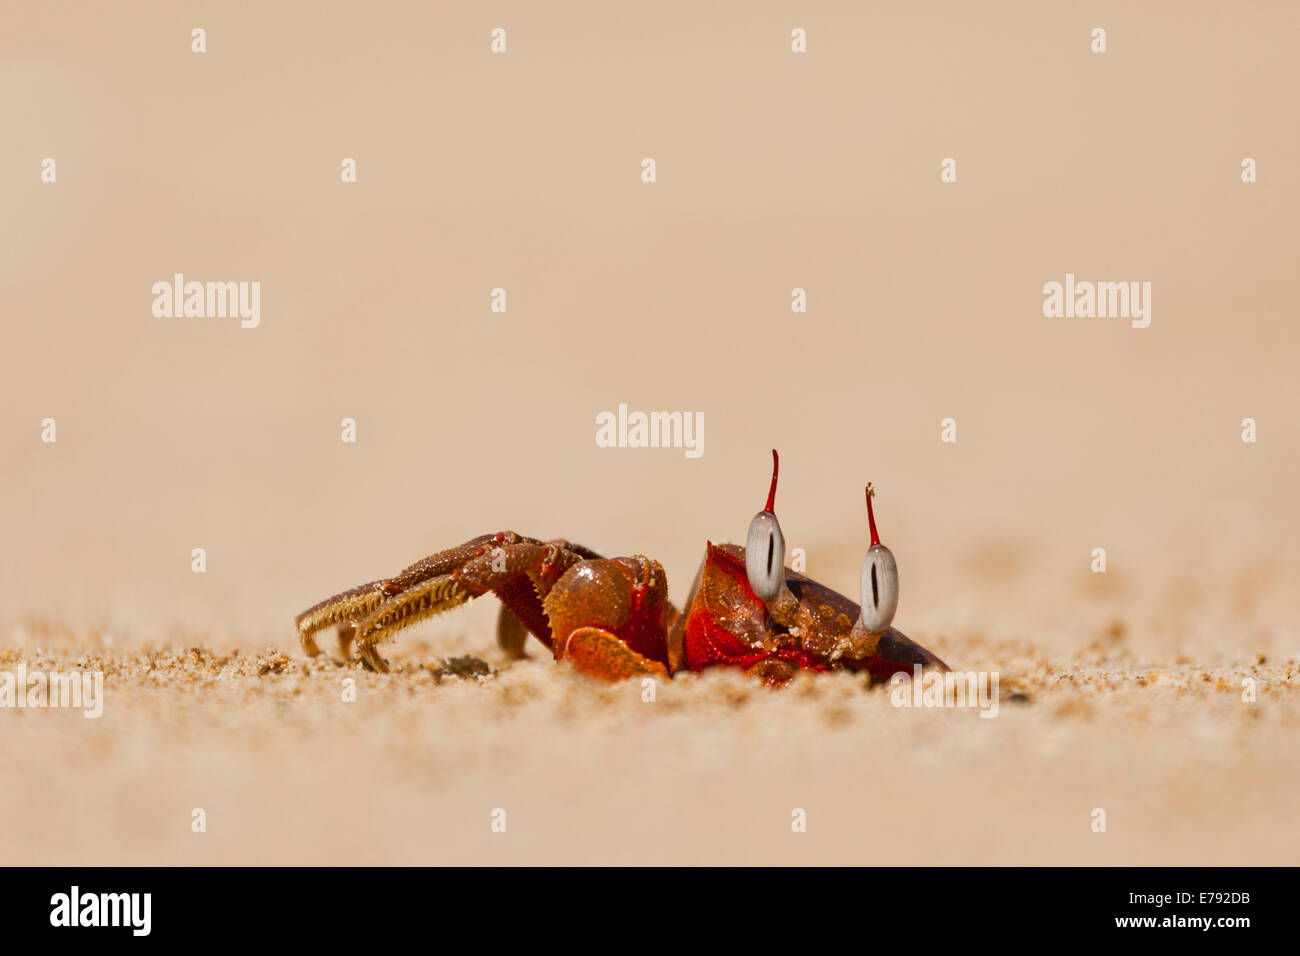 Red beach Crab (Brachyura) at its lair, Ngapali Beach, Thandwe, Myanmar - Stock Image